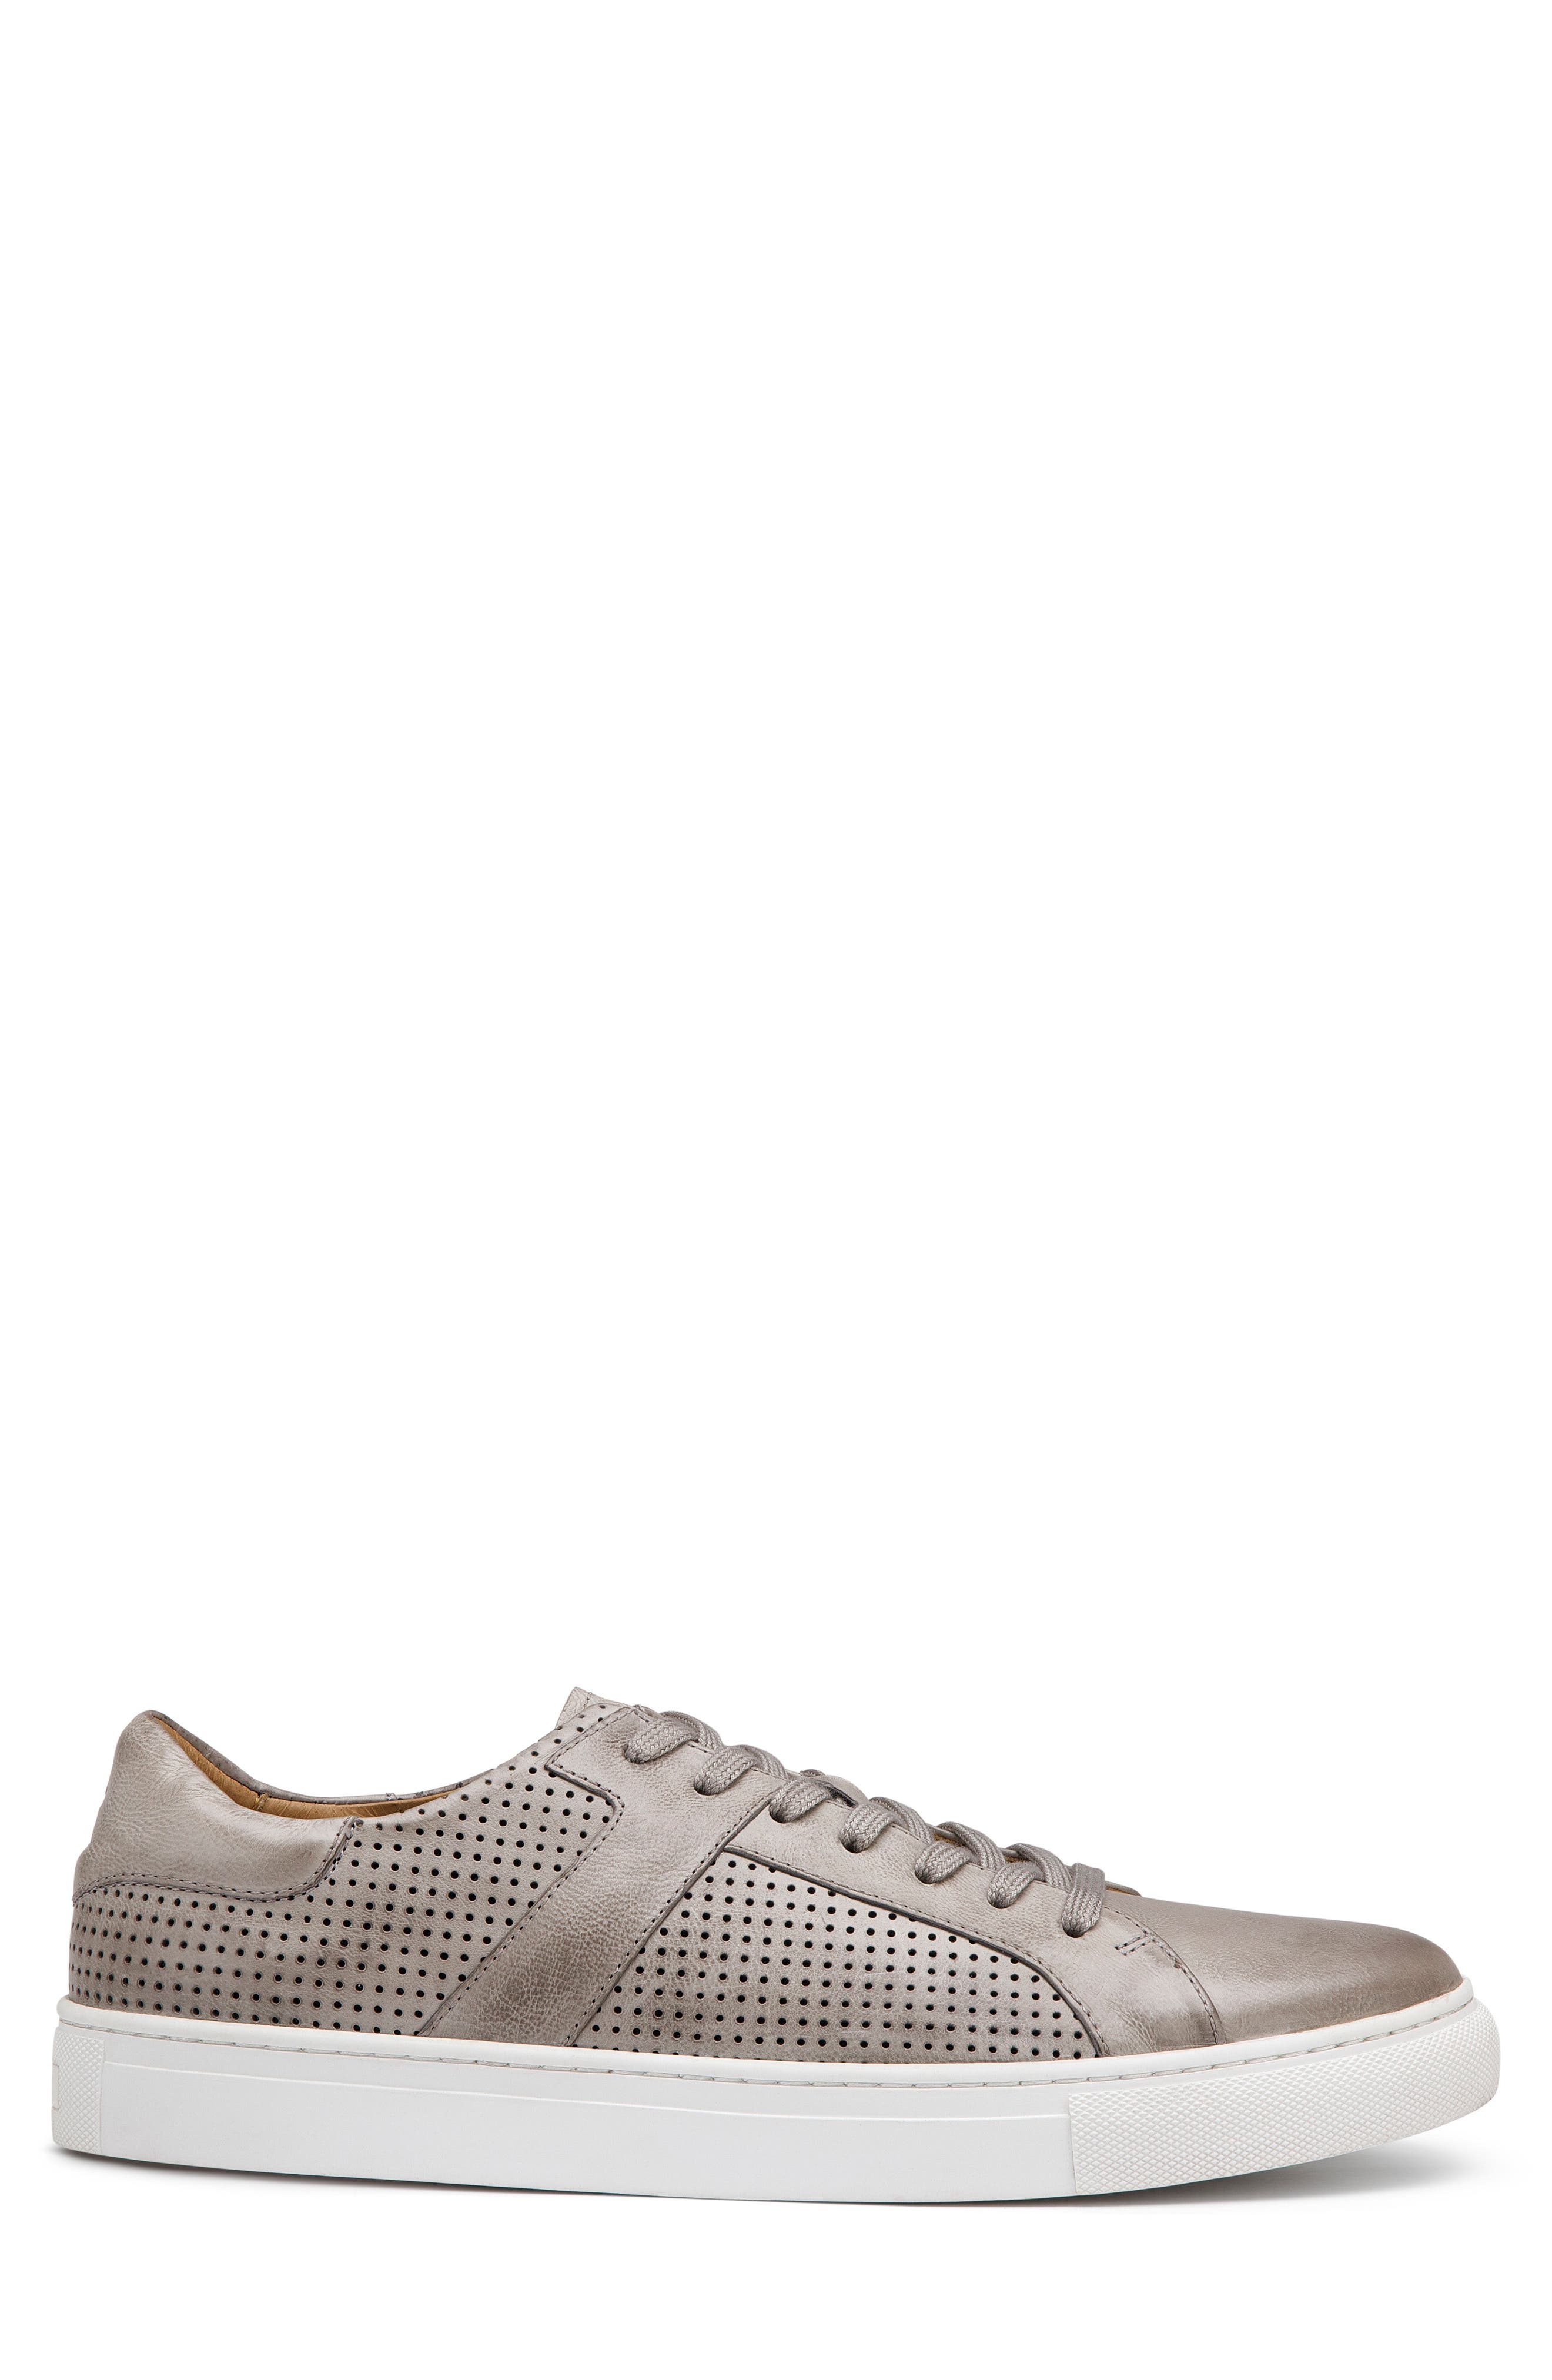 TRASK,                             Aaron Sneaker,                             Alternate thumbnail 3, color,                             LIGHT GREY LEATHER